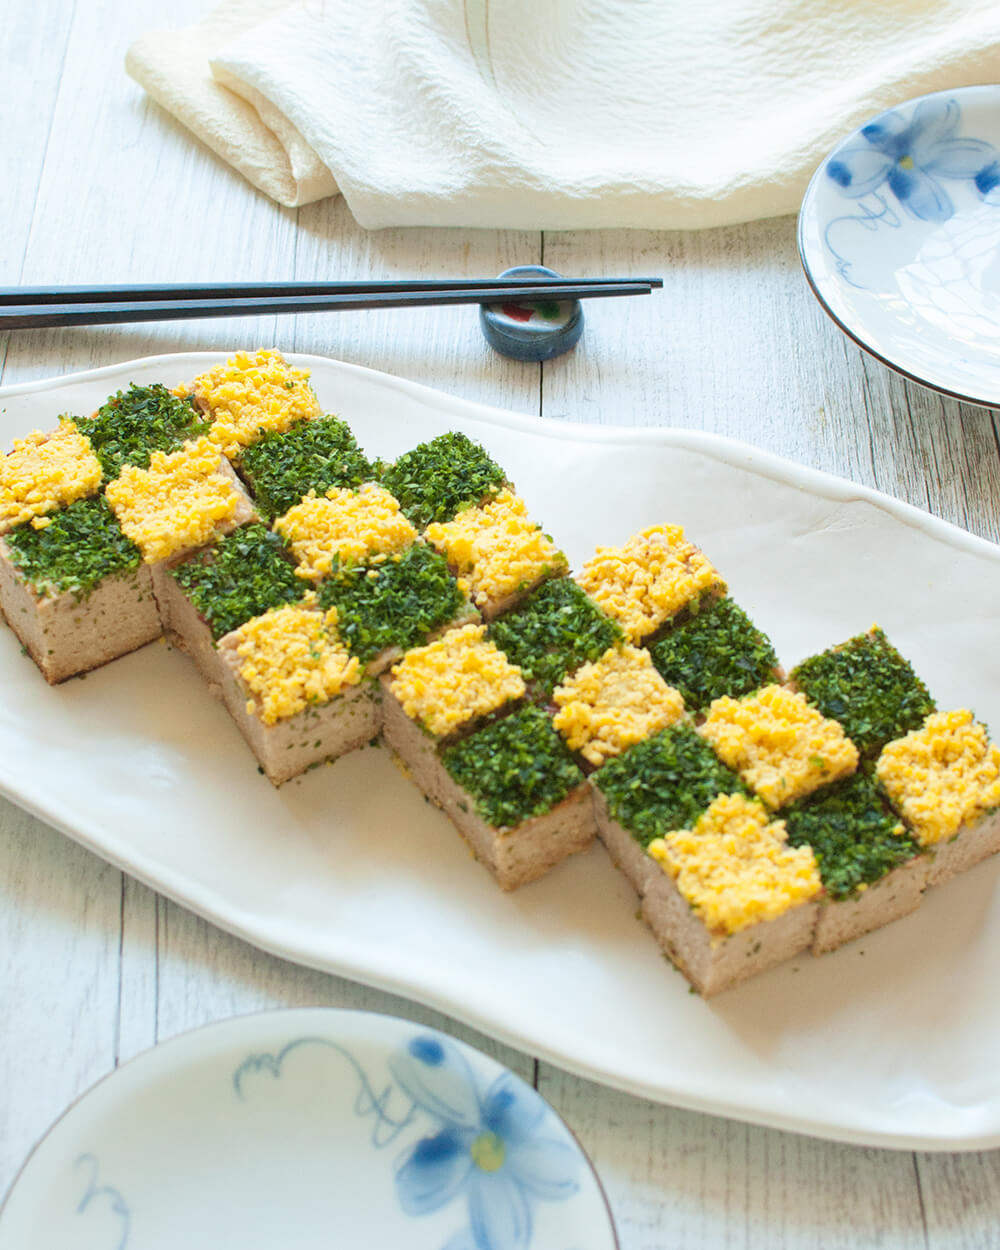 ? The meatloaf is flavoured with miso, soy sauce and sugar so it is quite different from the Western style meatloaf. It looks fiddly but actually, it is quite simple to make. Great as finger food or an accompanying side dish for a Japanese meal.